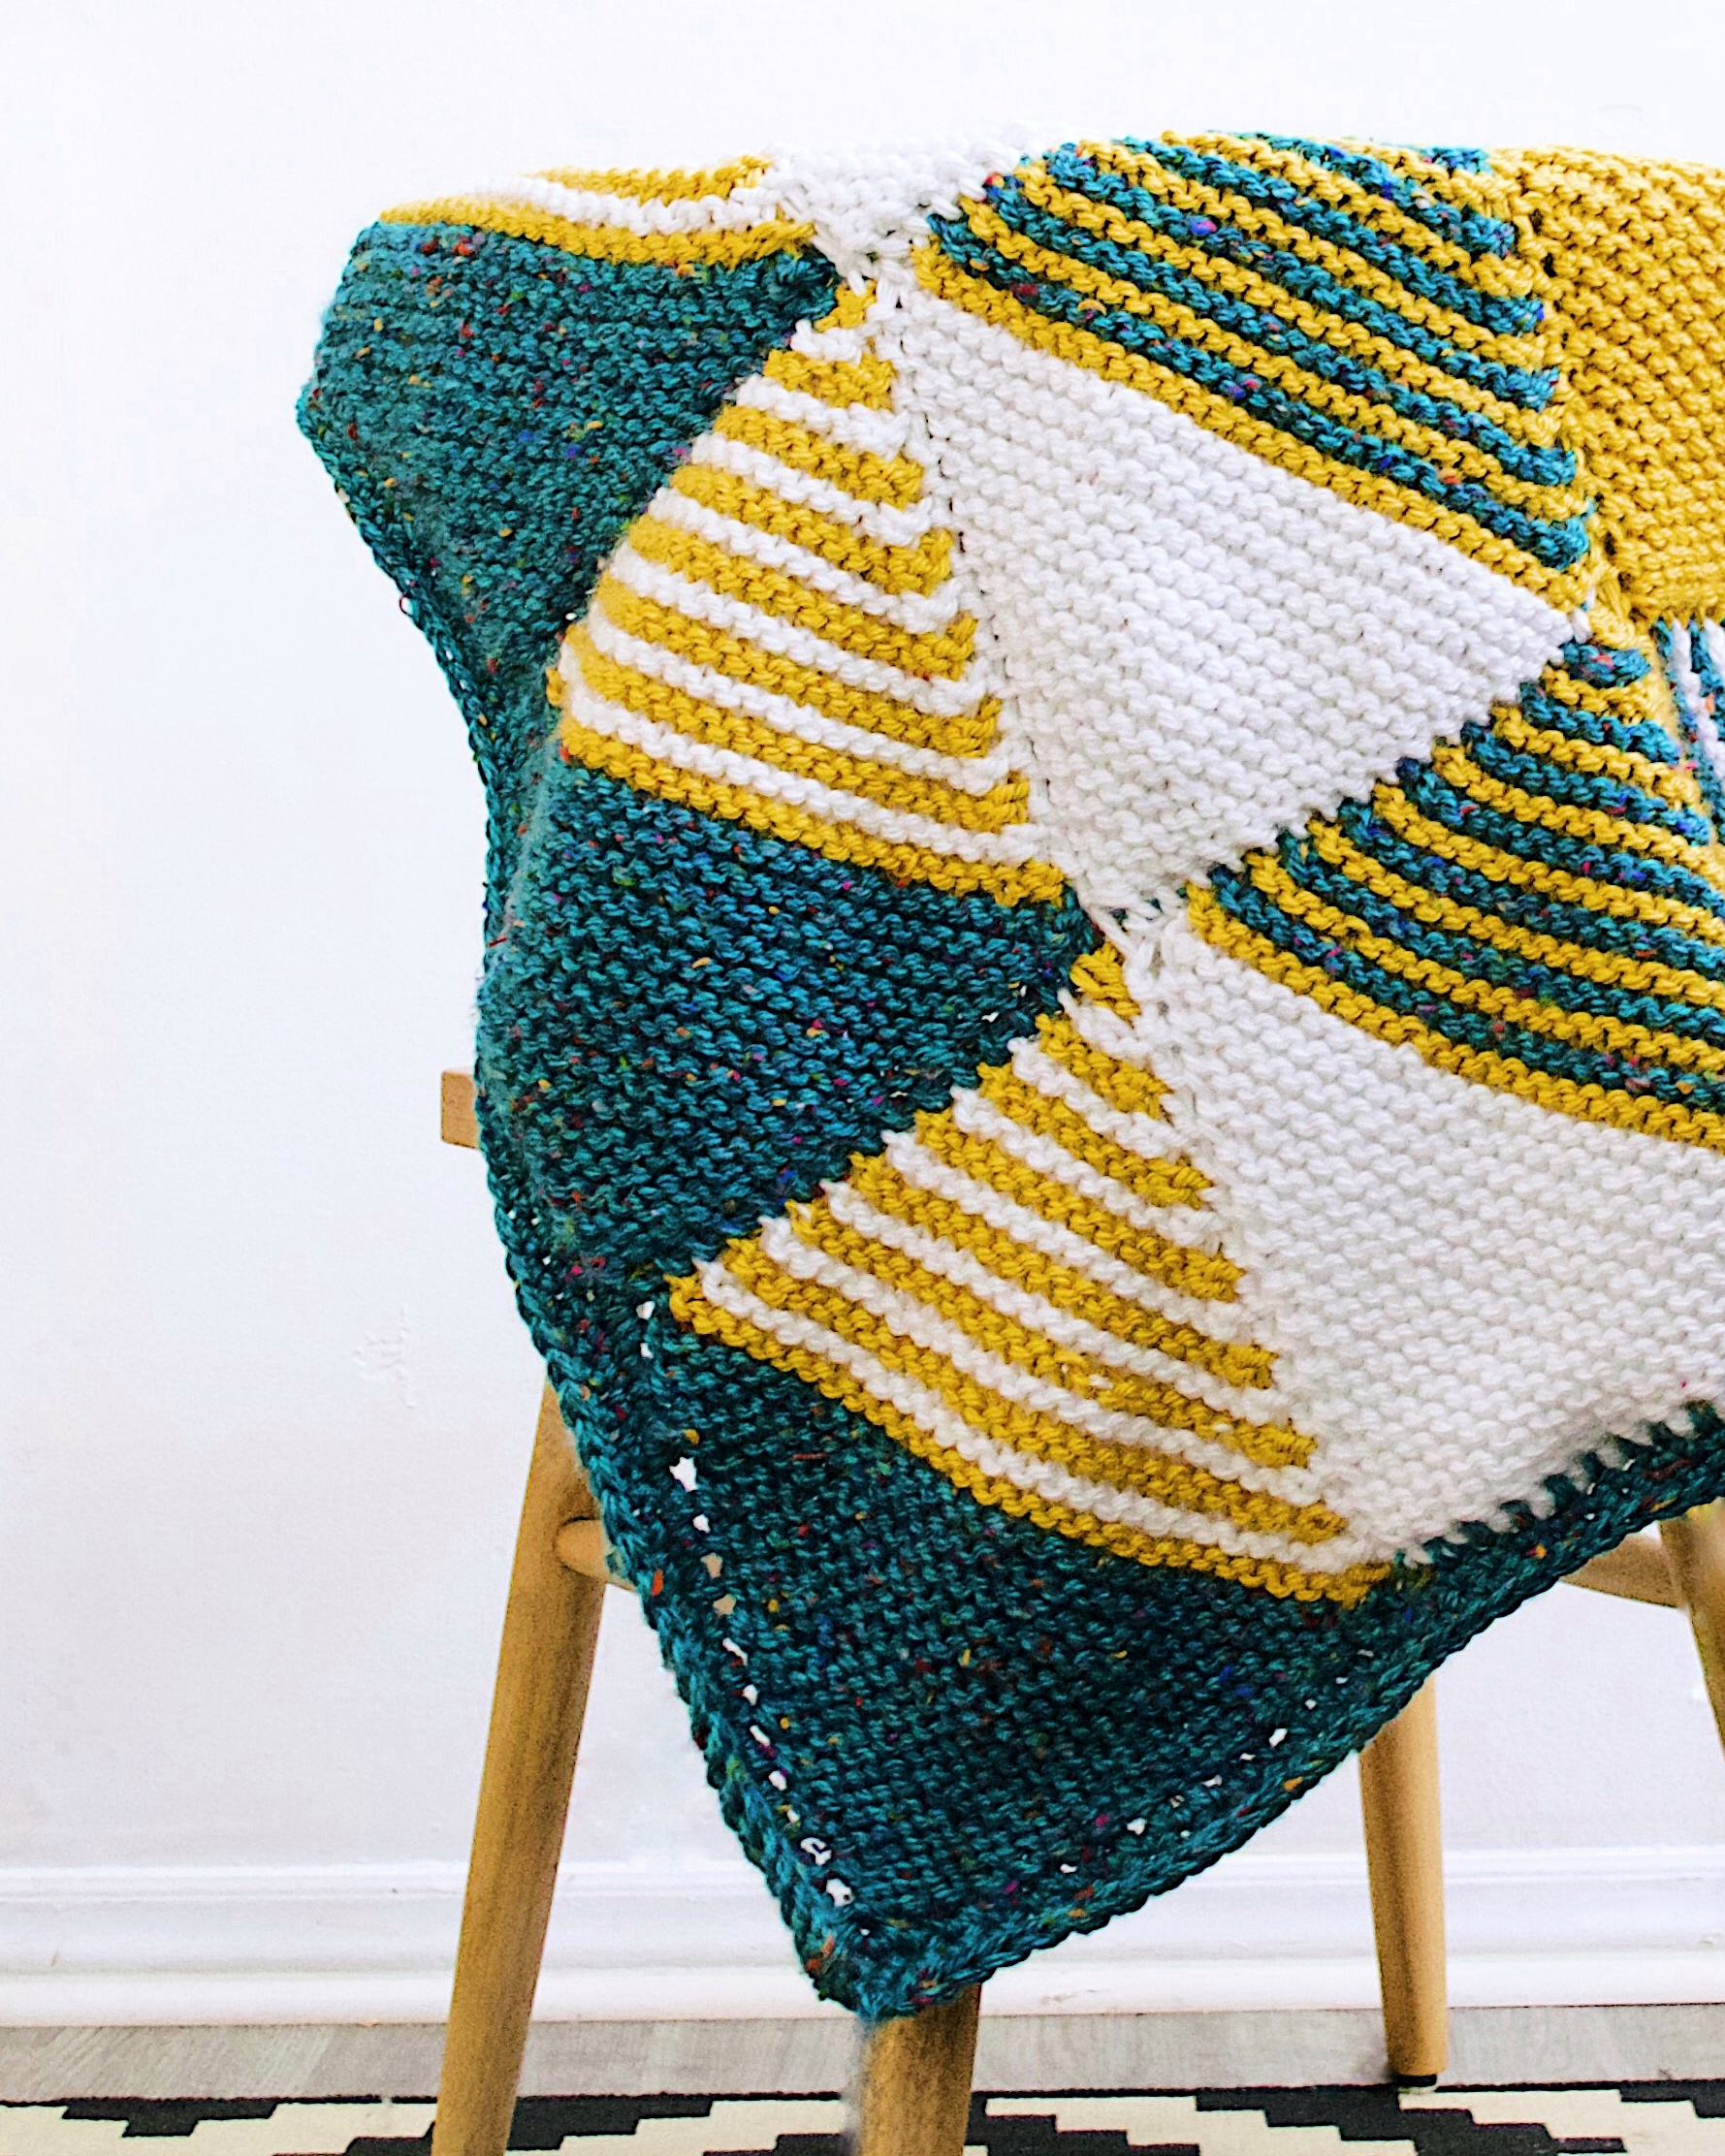 The finished Knitted Baby Blanket draped over a chair